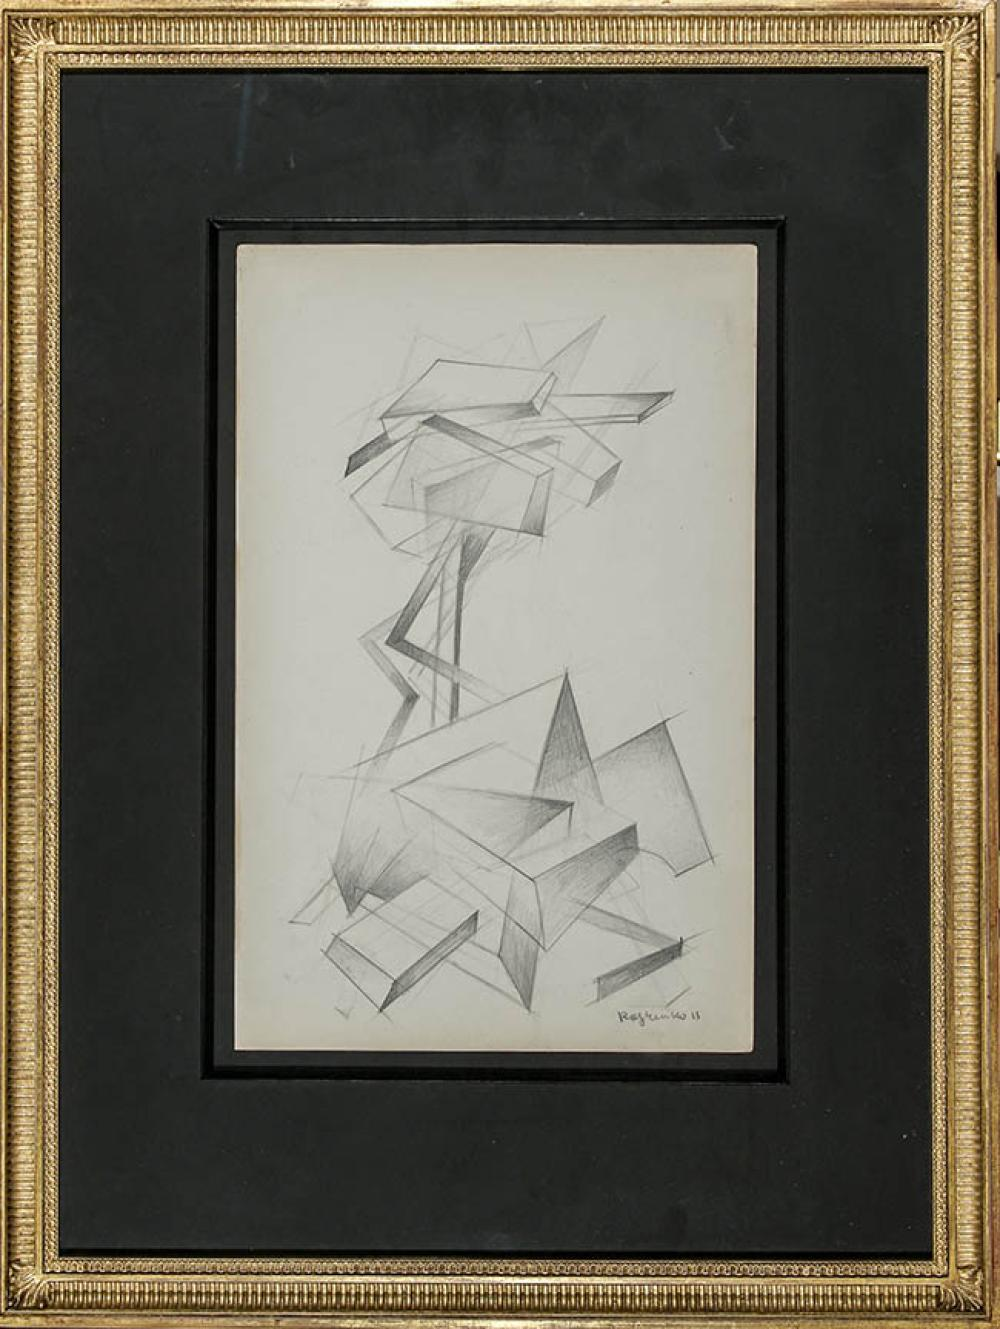 Attributed to Alexandre Mikhailovich Rodchenko (Russian 1891-1956), Untitled, Graphite on Paper, Framed, Sheet size: 13-3/4 x 9 in